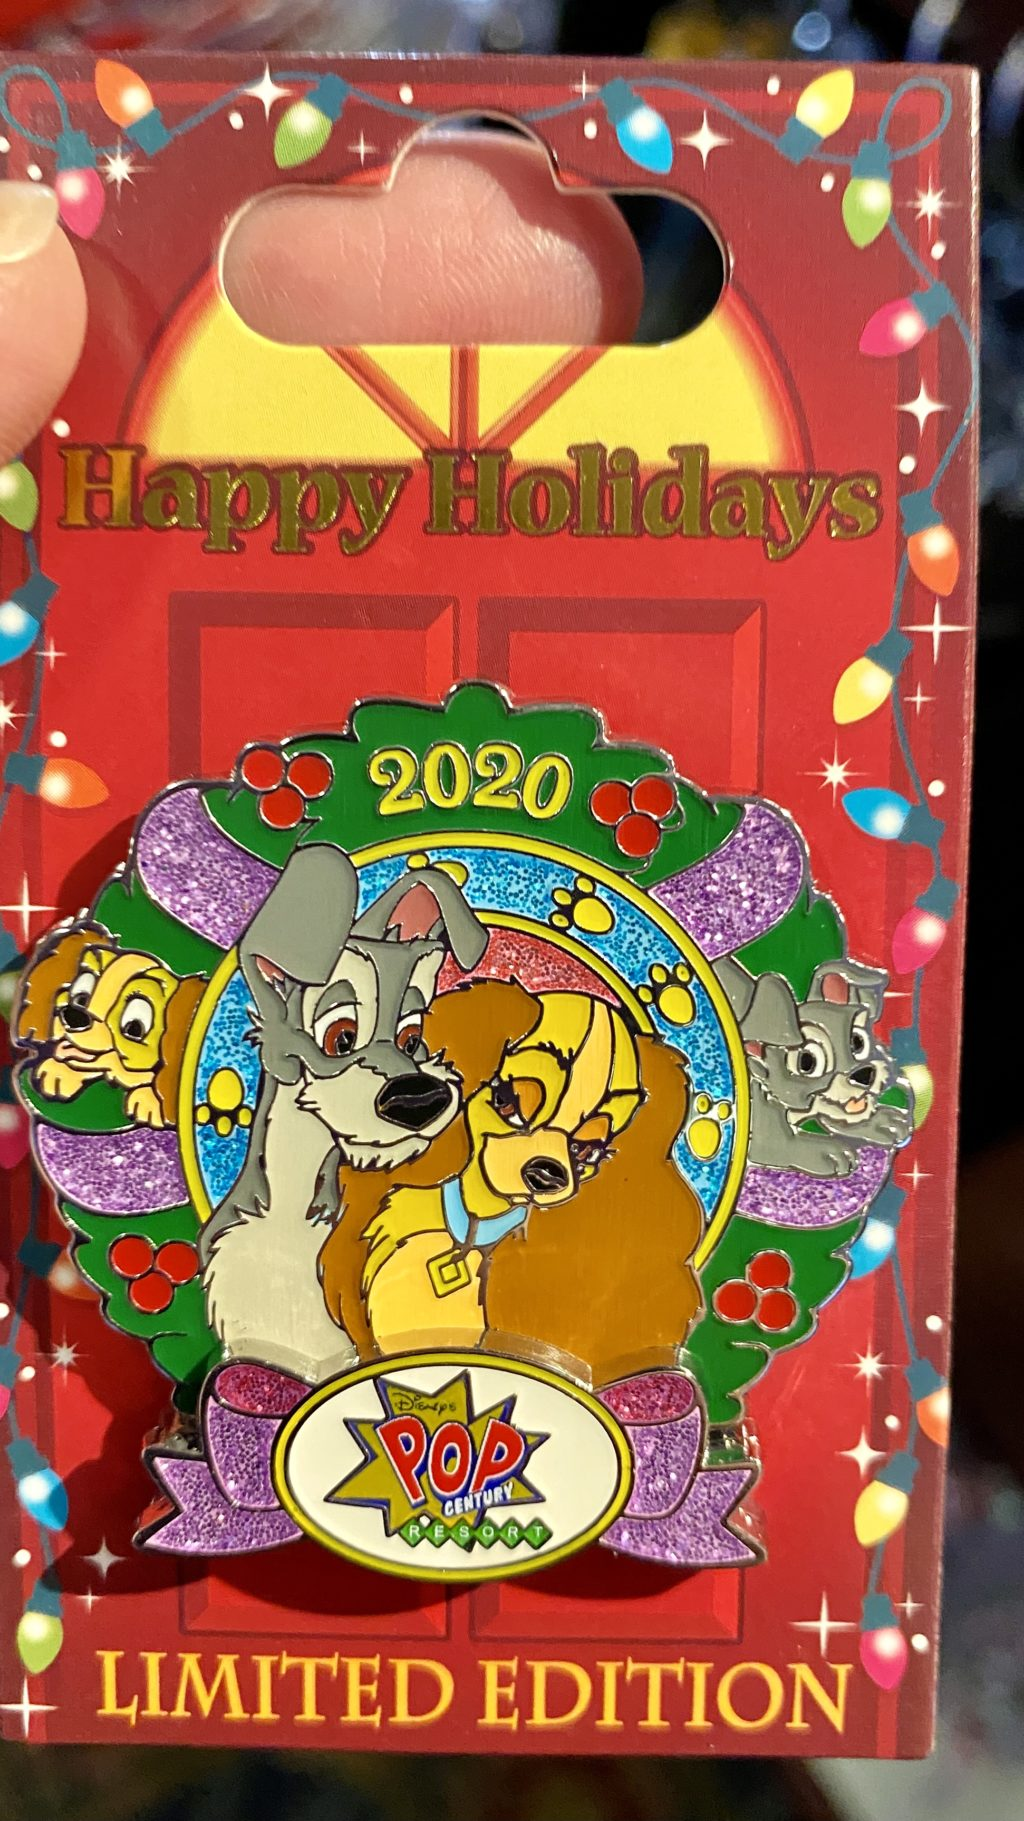 2020 Disney resort holiday pin